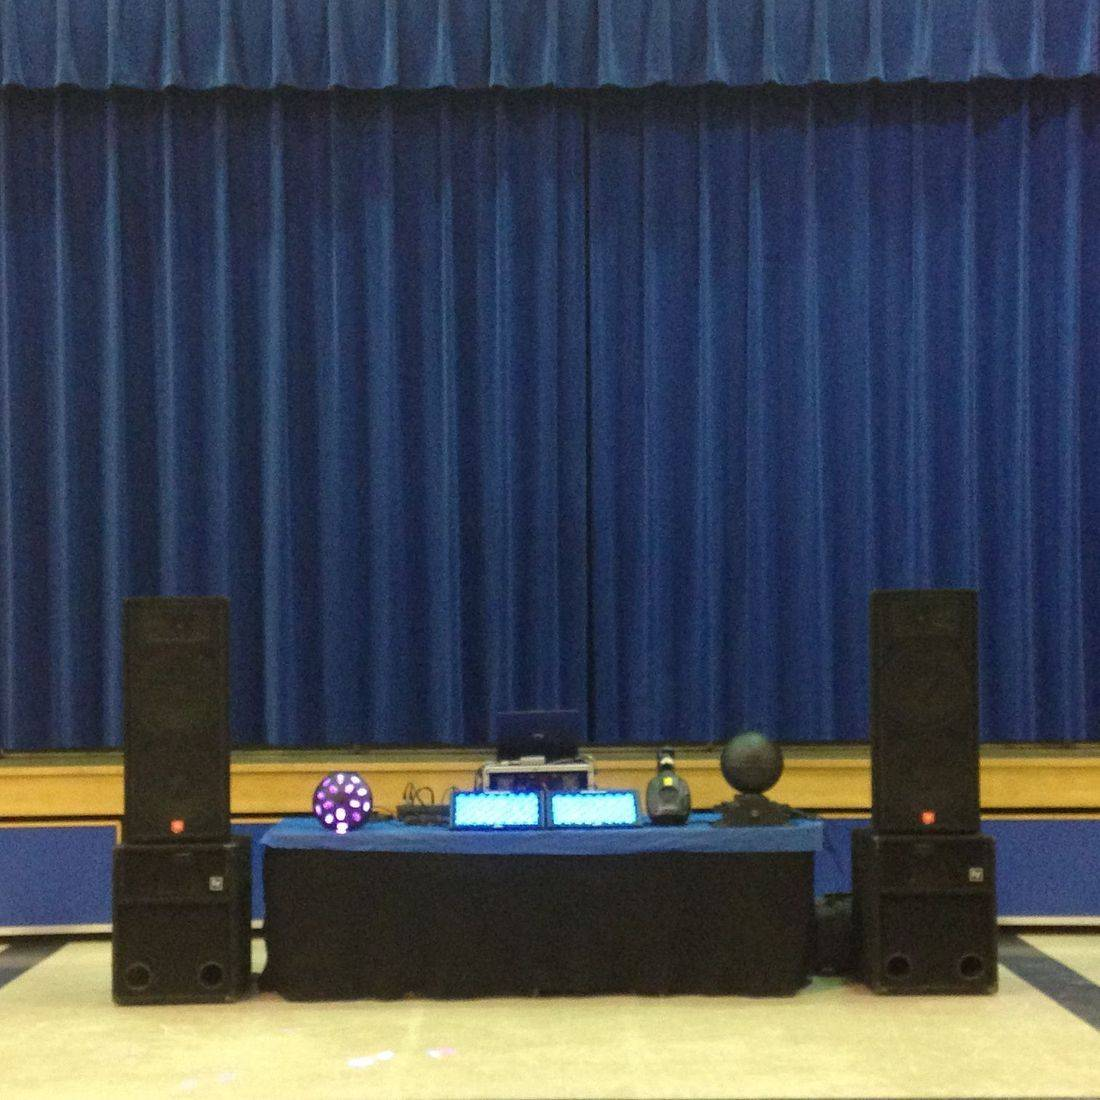 Mr. Productions DJ Service DJ'n for a high school dance at McKinnon Park Secondary School in Caledonia.